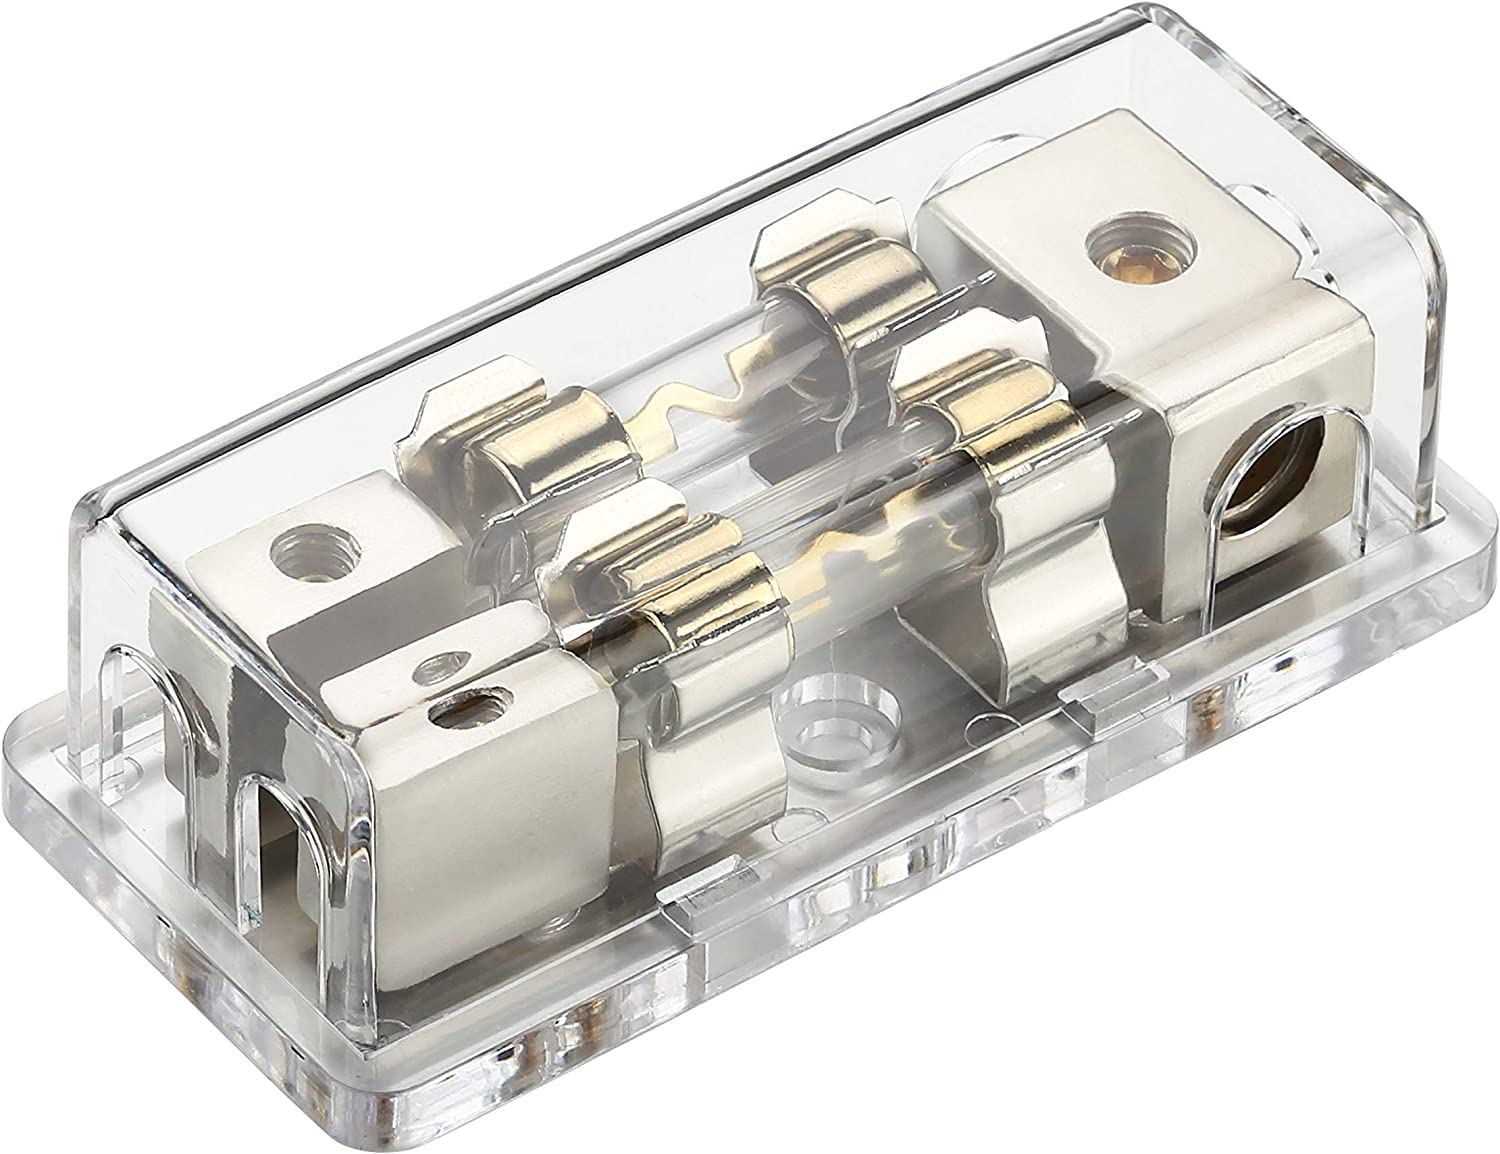 Freajoin 4//8 Gauge AWG AGU Fuse Holder Fused Distribution Block 4 Gauge in to 2 x 8 Gauge Out with 2PCS 60A Gold-Plated Fuses